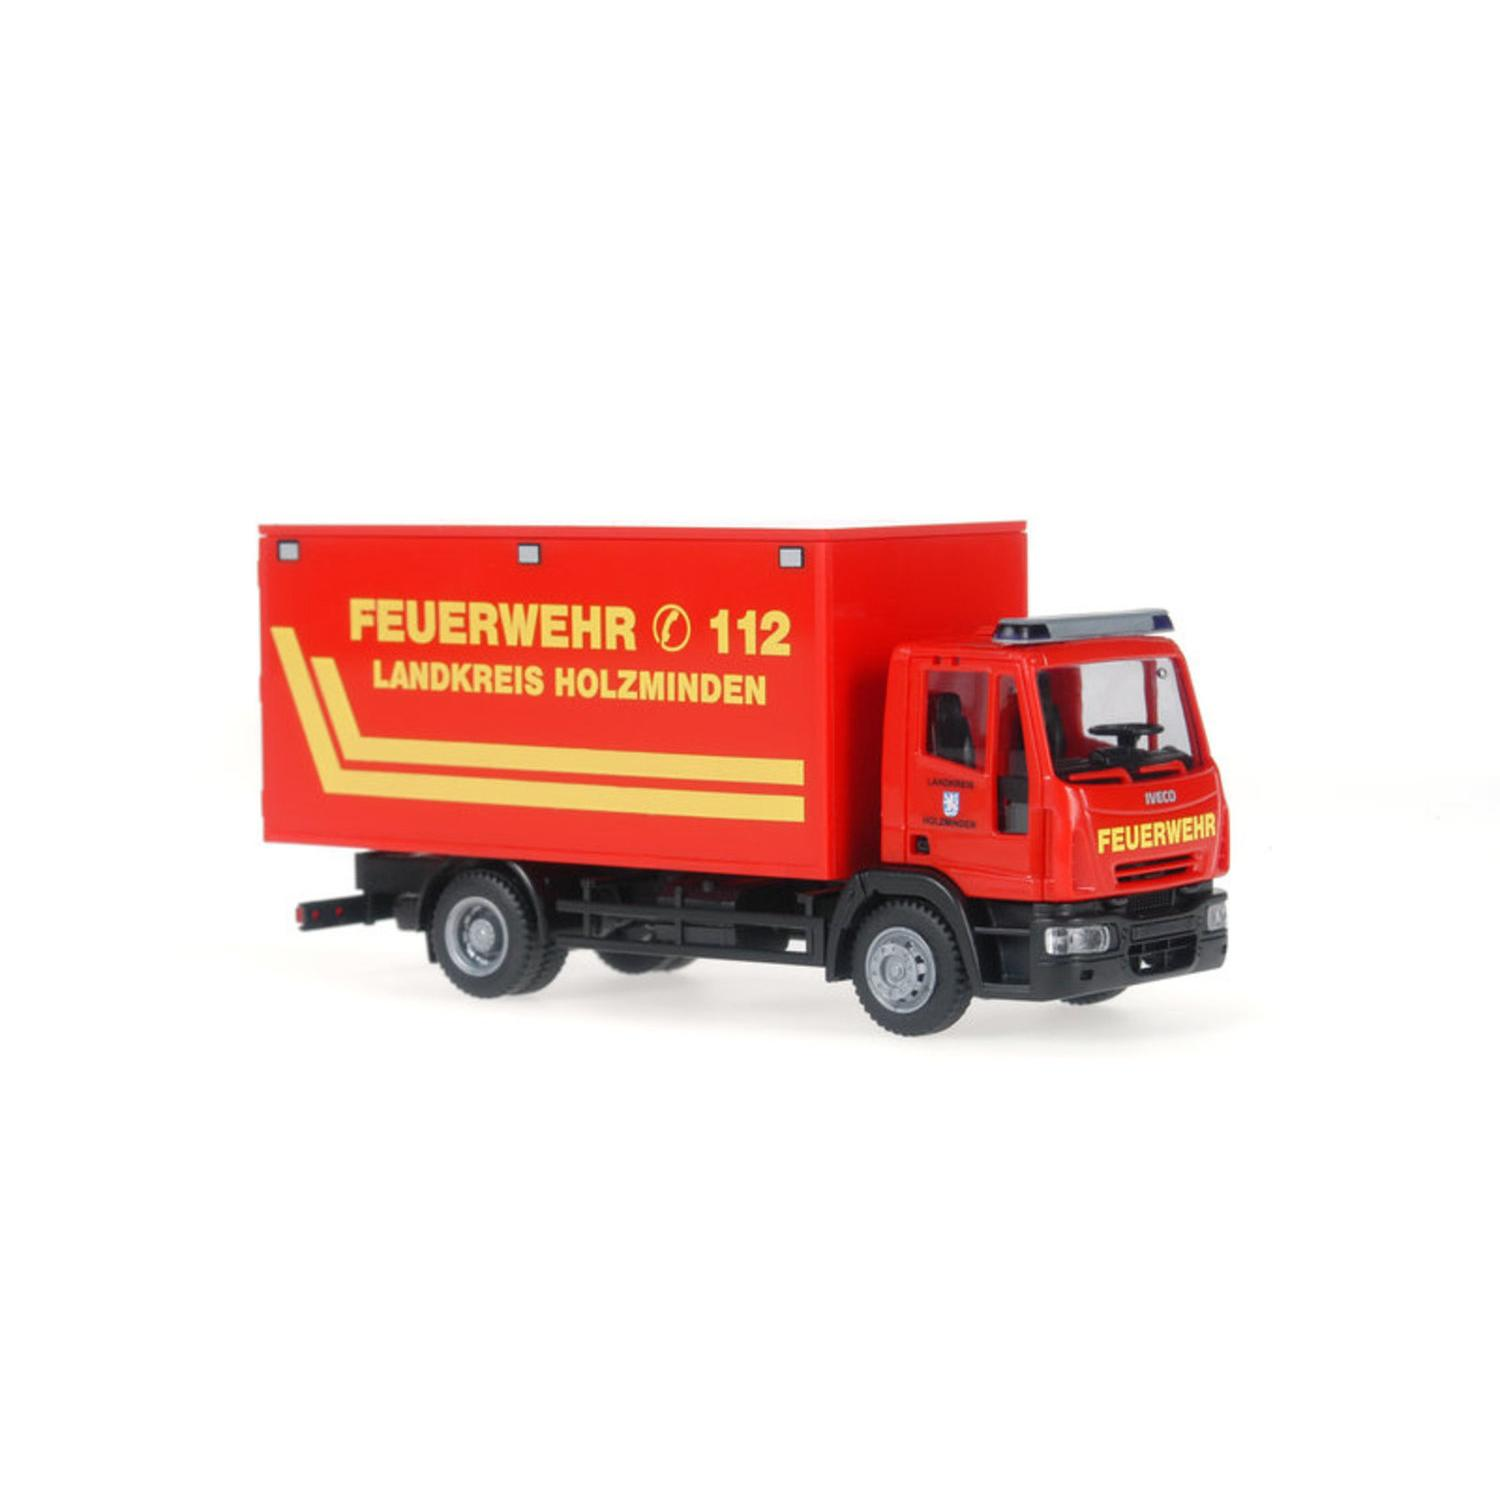 "H0 ""Iveco Eurocargo Koffer \""\""FW Ho\"""